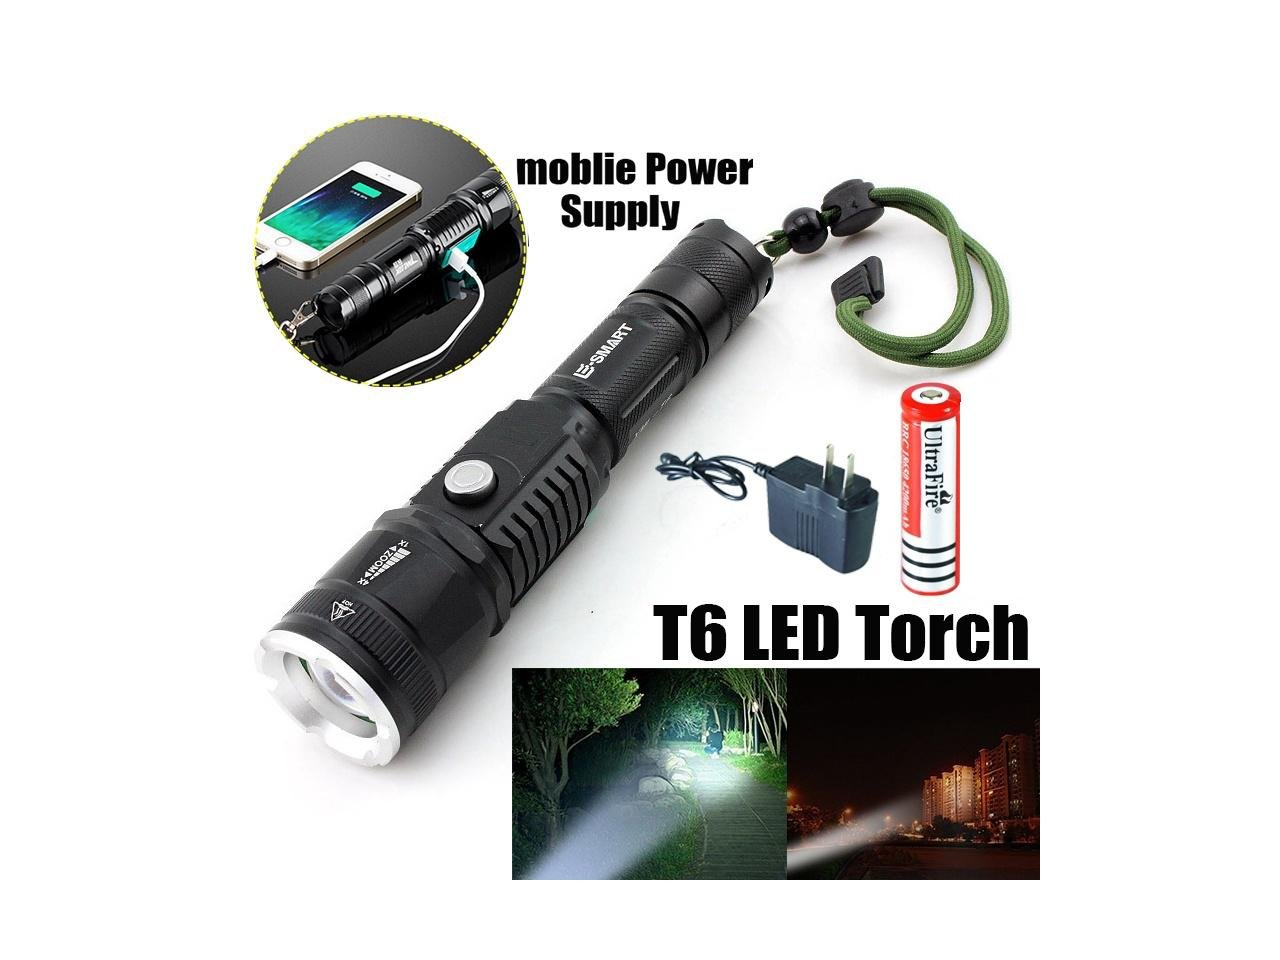 Briday Super Bright Stainless Steel USB Port CREE XM-L T6 LED Flashlight Rechargeable Power Bank For Mobile Phone + 1 Rechargeable 18650 Battery+ 1 AC Charger